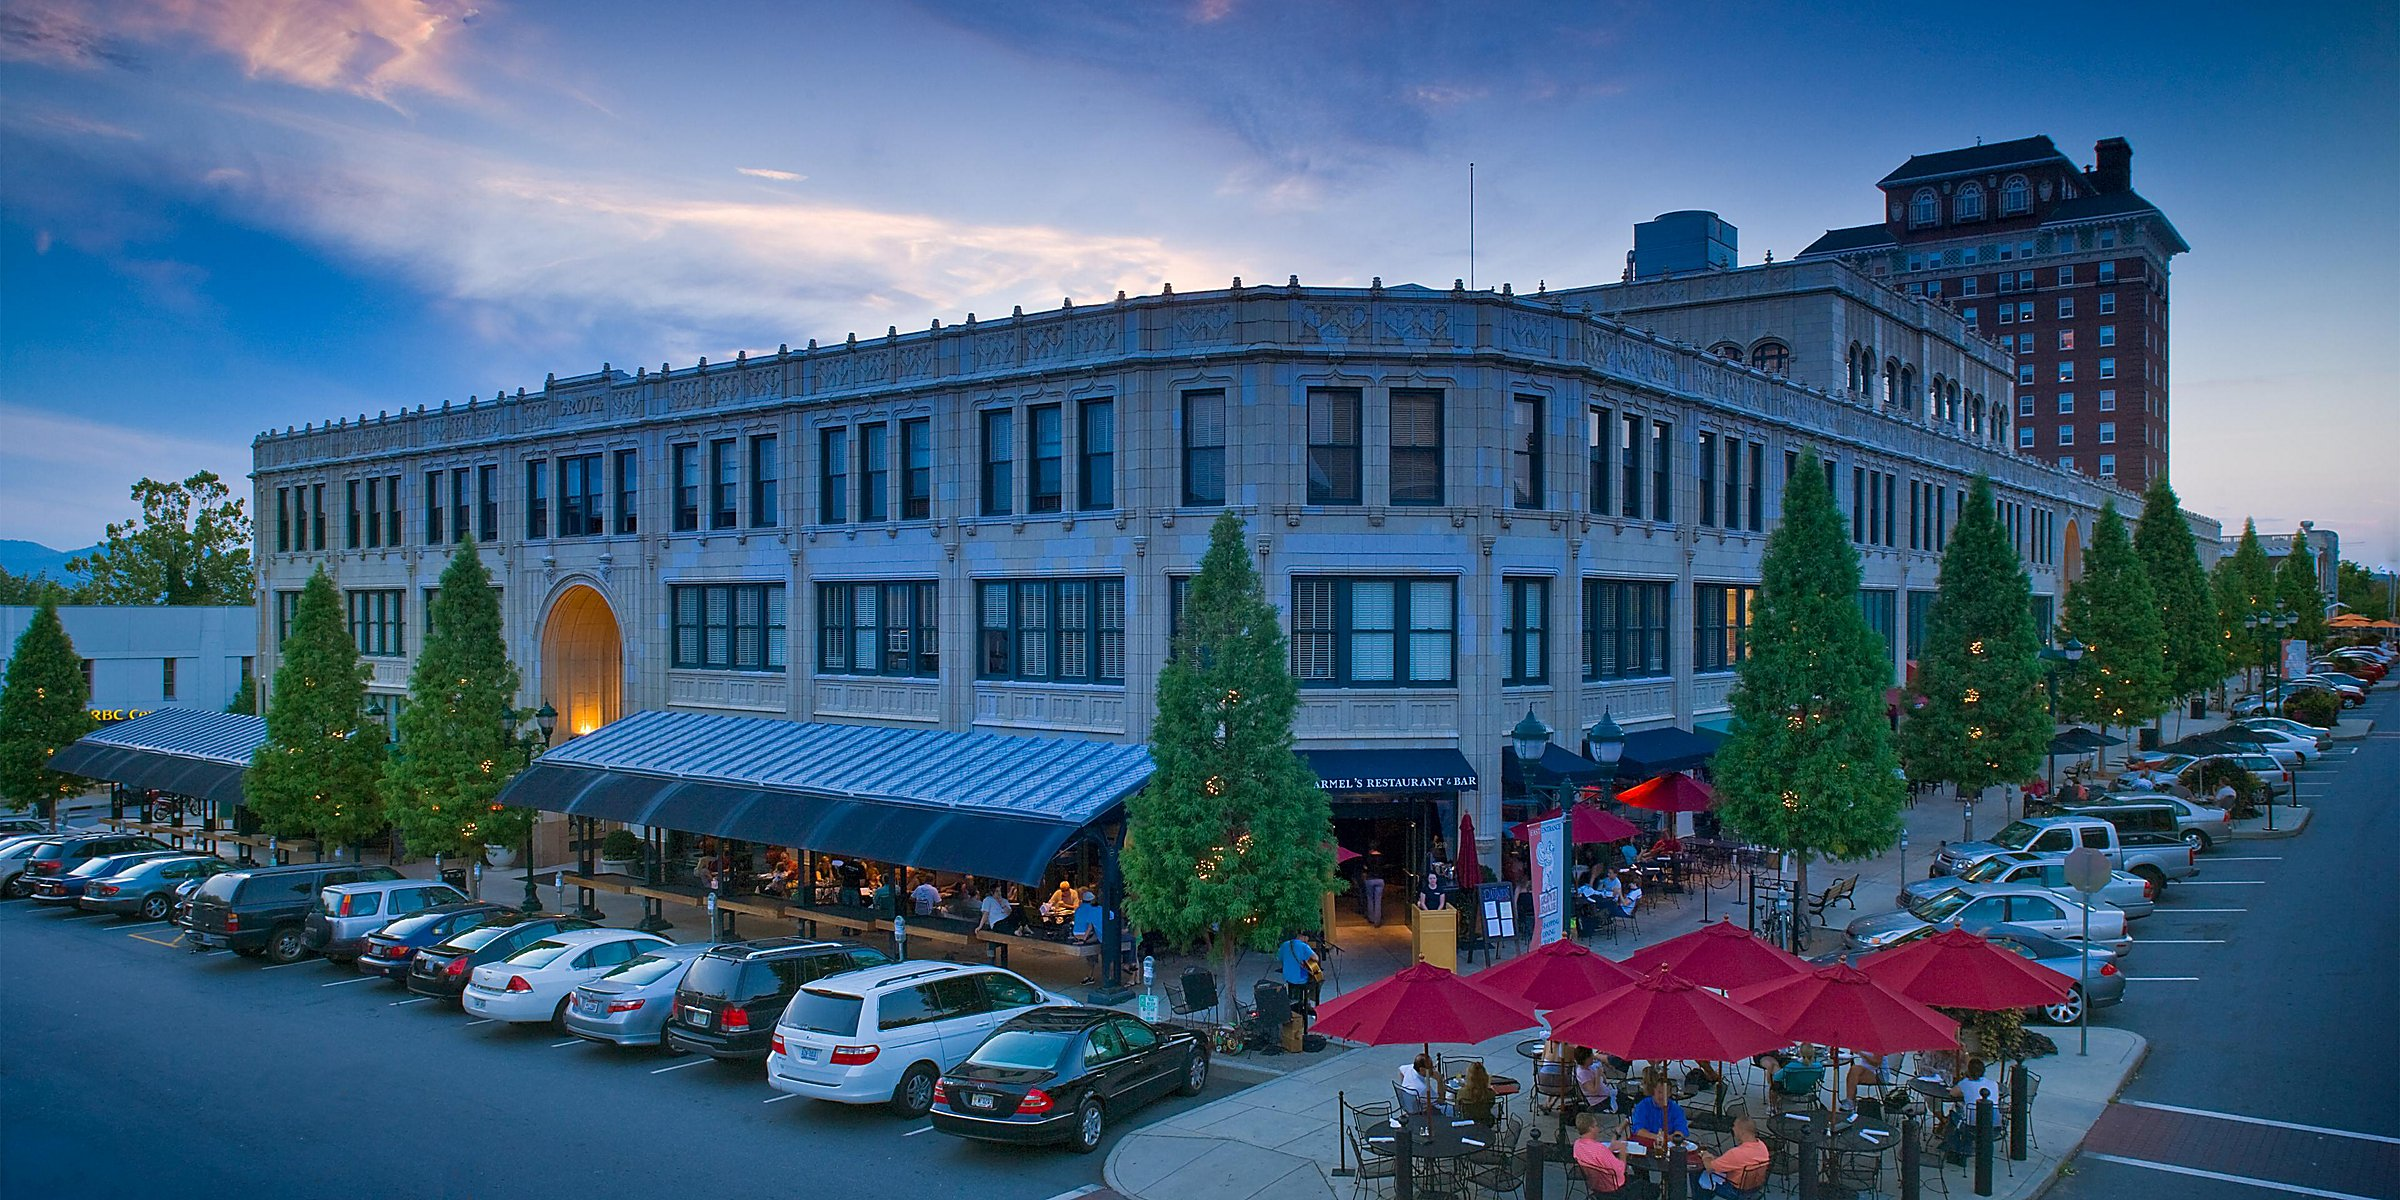 Hotels In Asheville Nc >> Asheville Hotels Hotel Indigo Asheville Downtown Hotel In Asheville